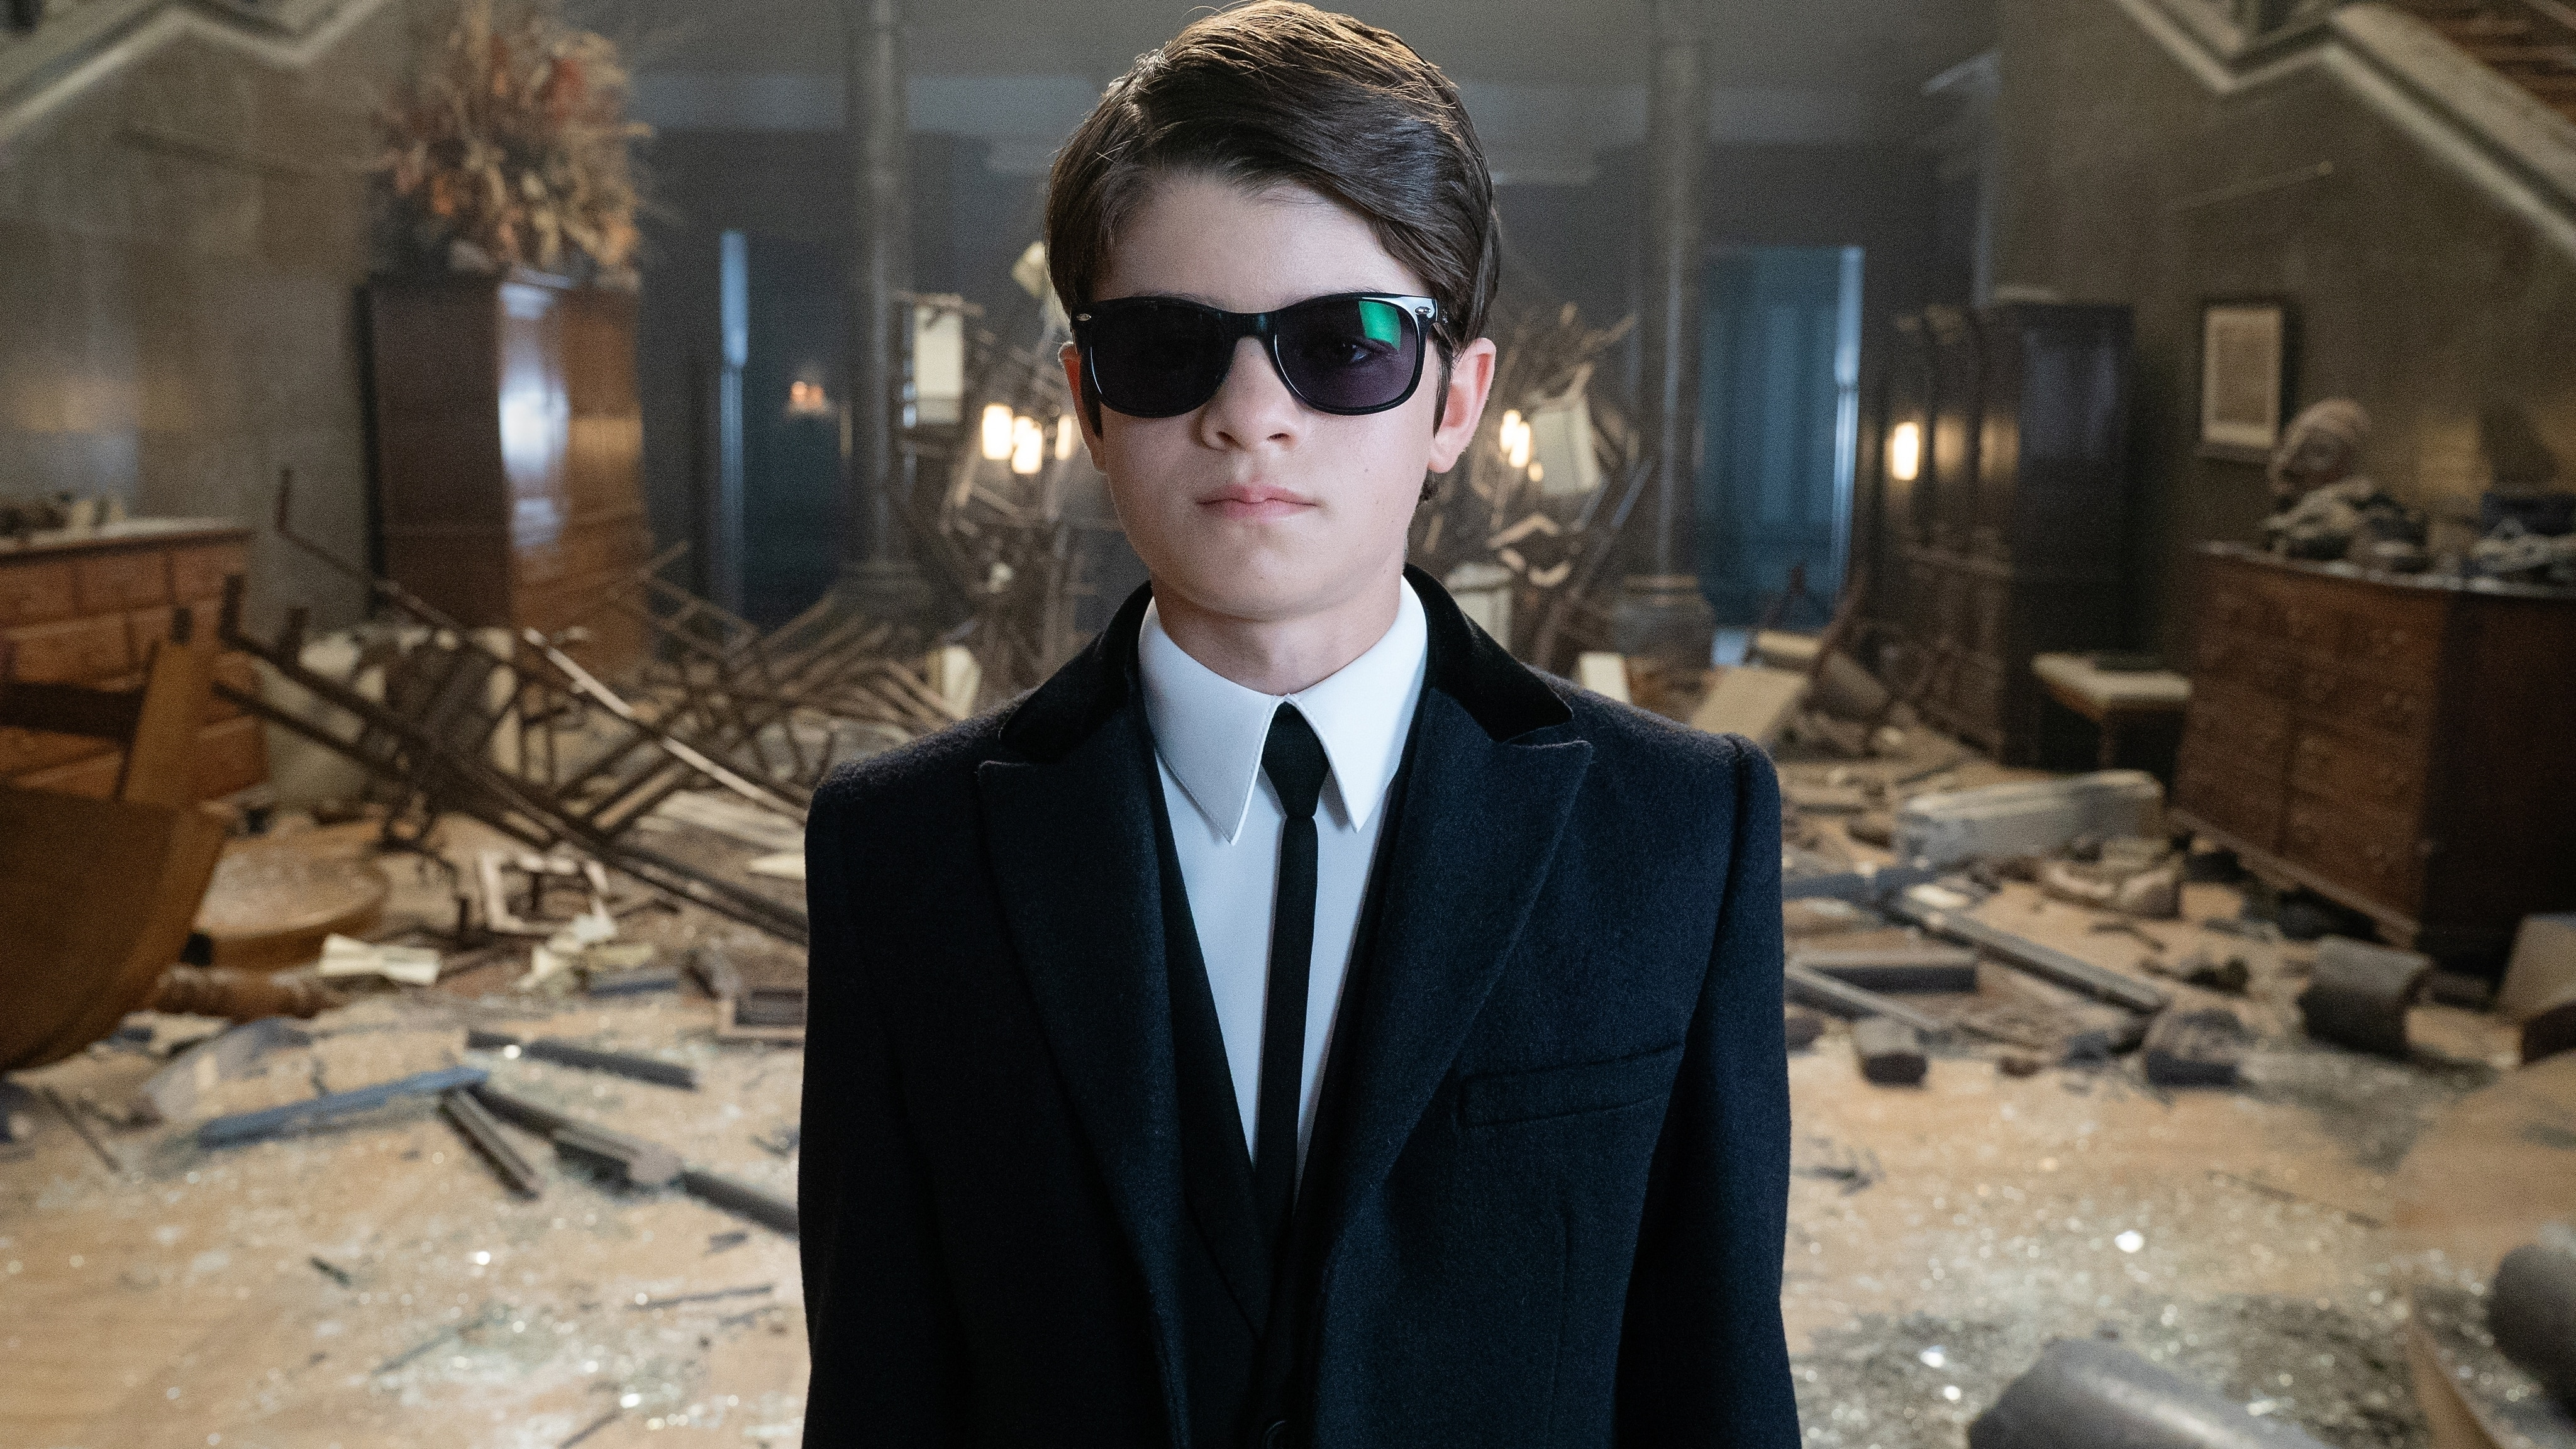 Ferdia Shaw is Artemis Fowl in ARTEMIS FOWL, directed by Kenneth Branagh. Photo by Nicola Dove.